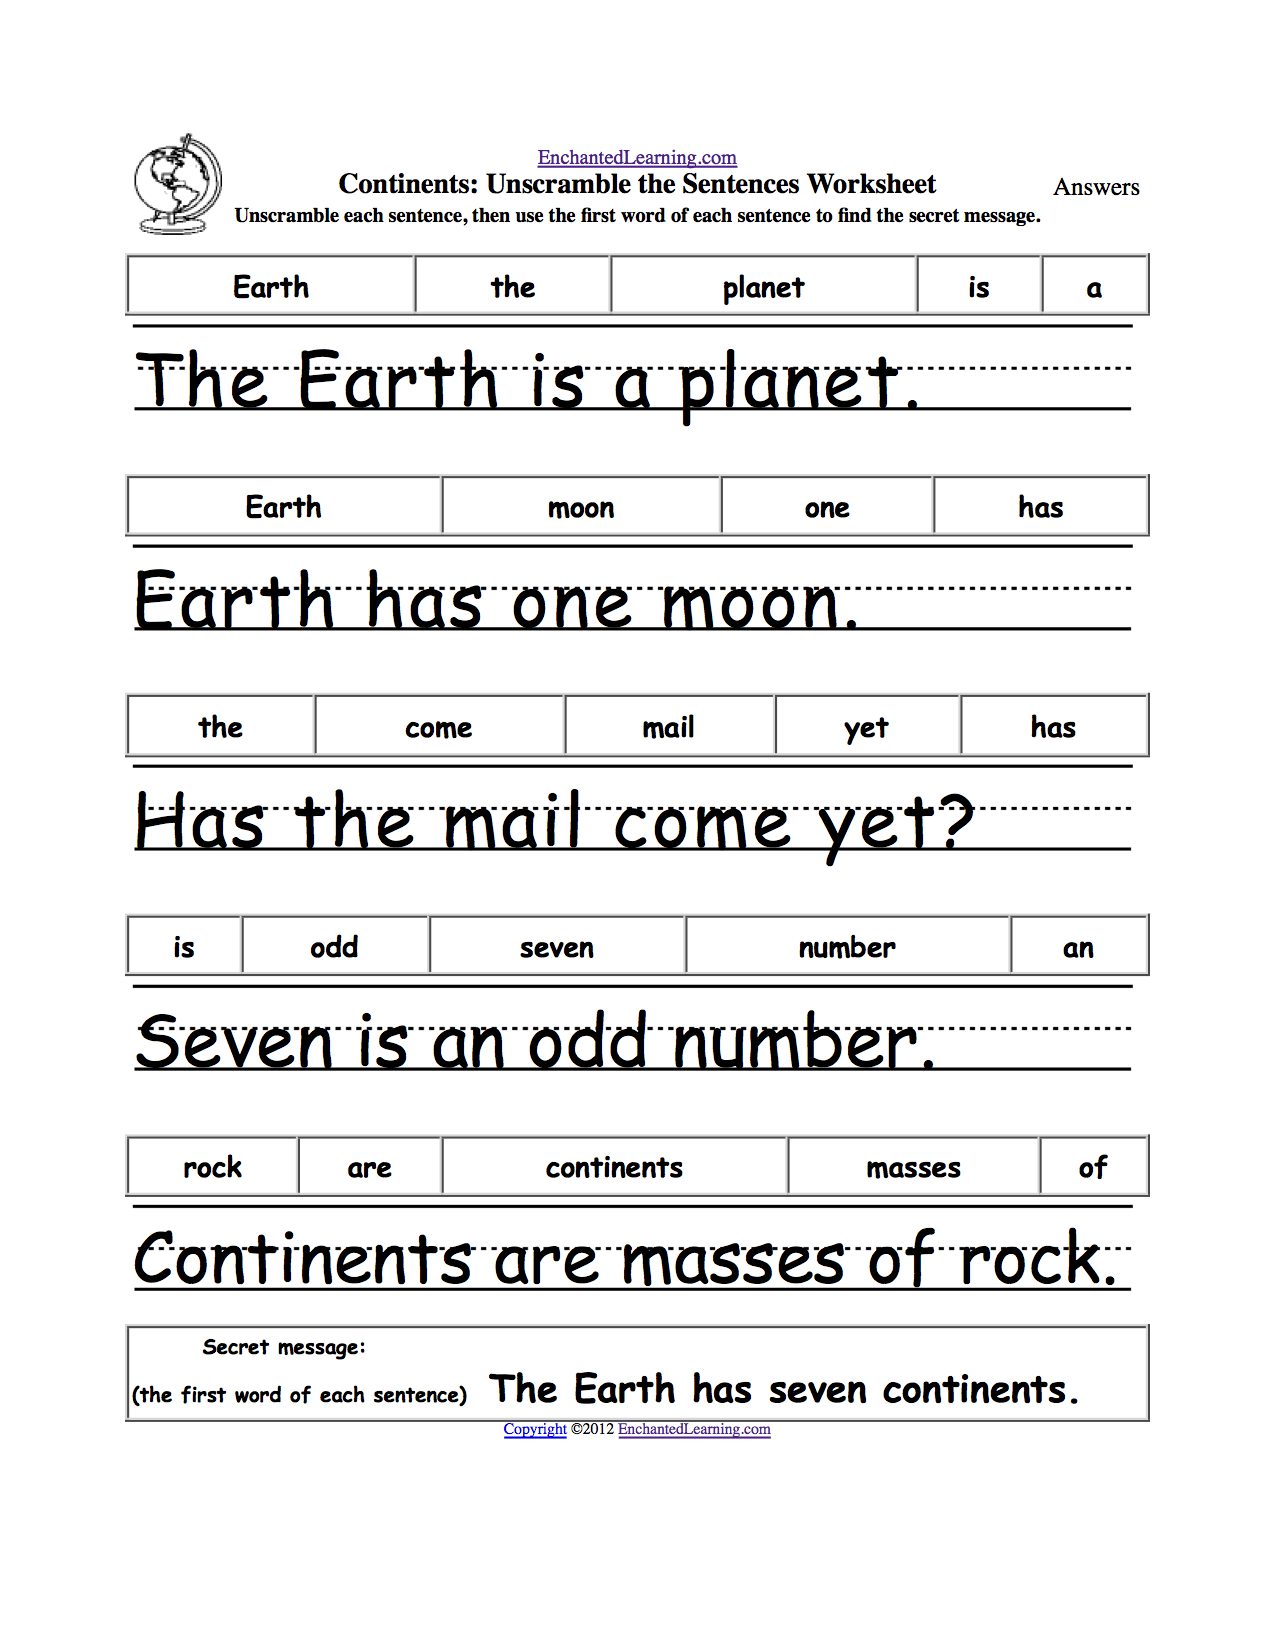 Unscramble the Sentences Worksheets - EnchantedLearning.com